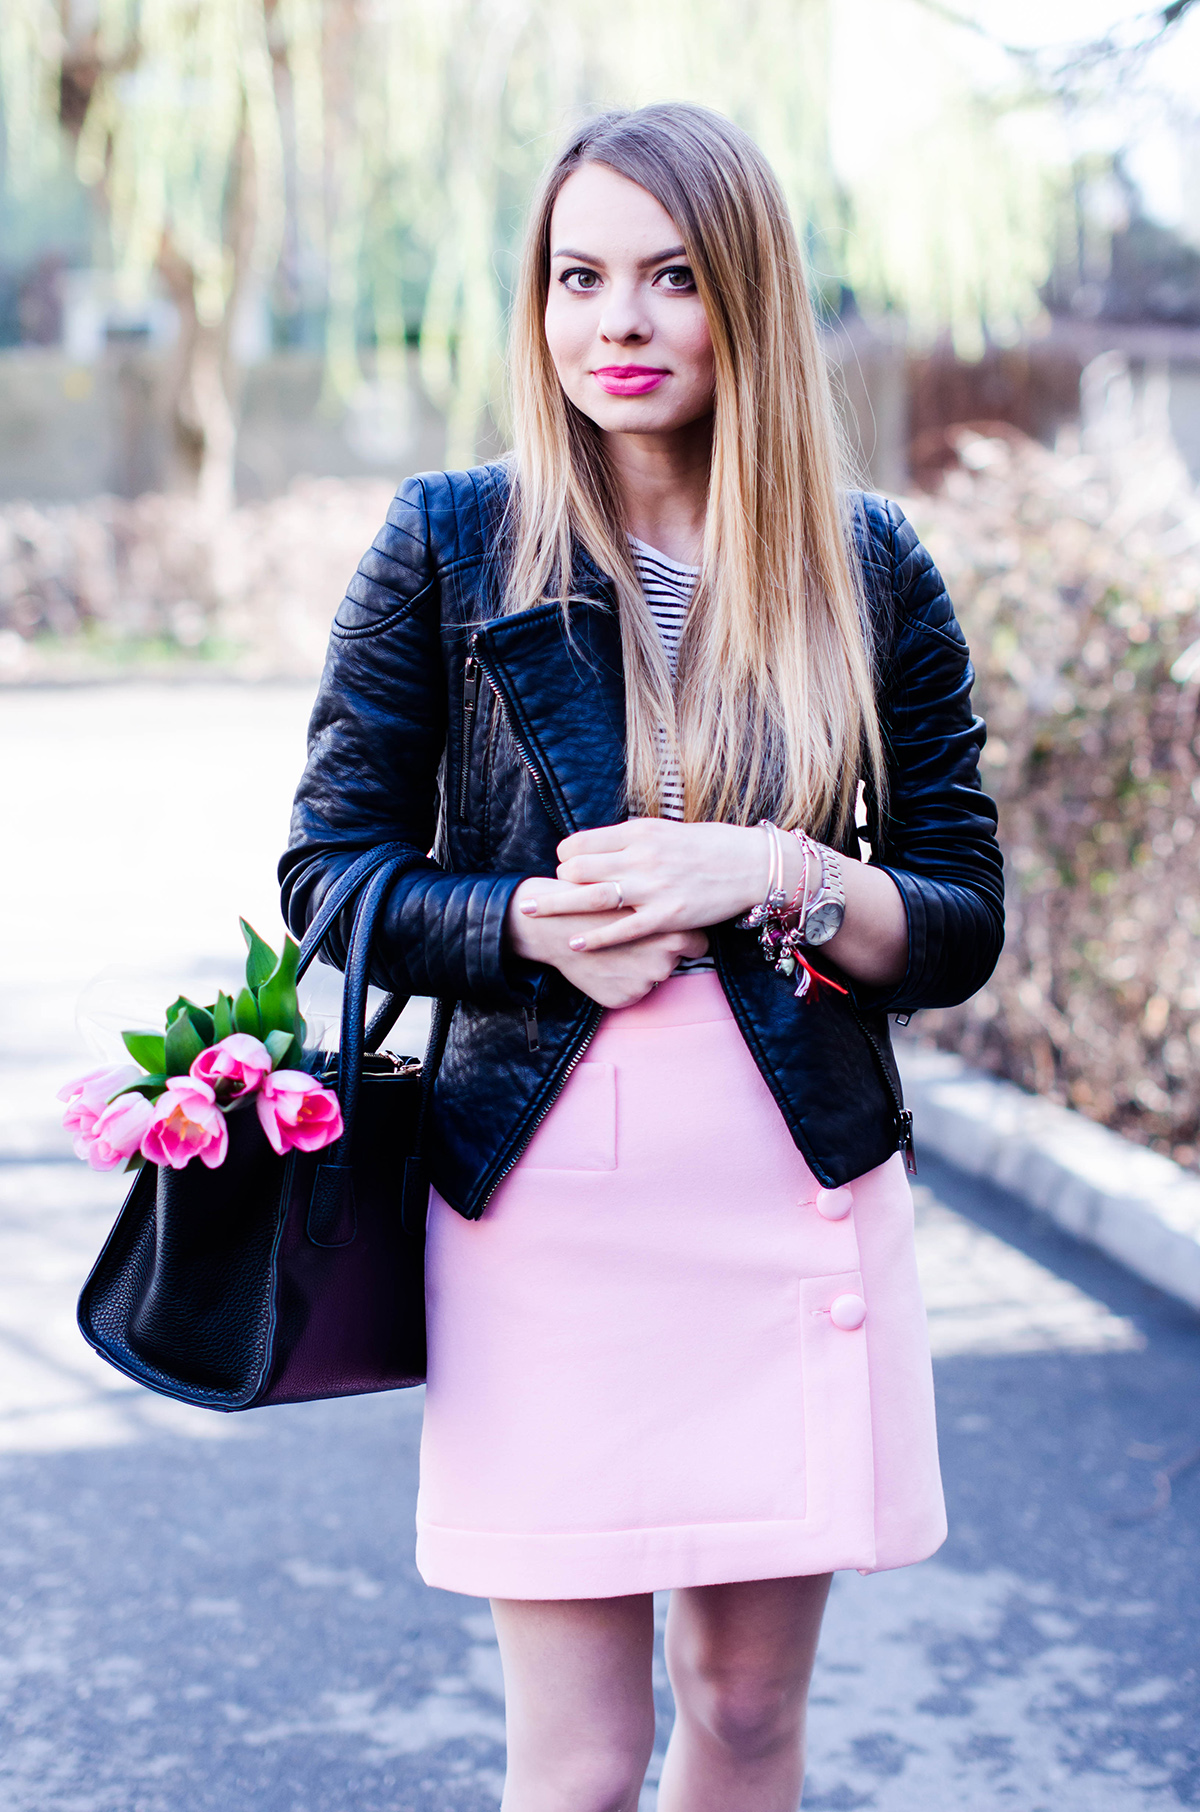 pink-a-line-skirt-adidas-stan-smith-leather-jacket-spring-outfit-pink-tulips (9)